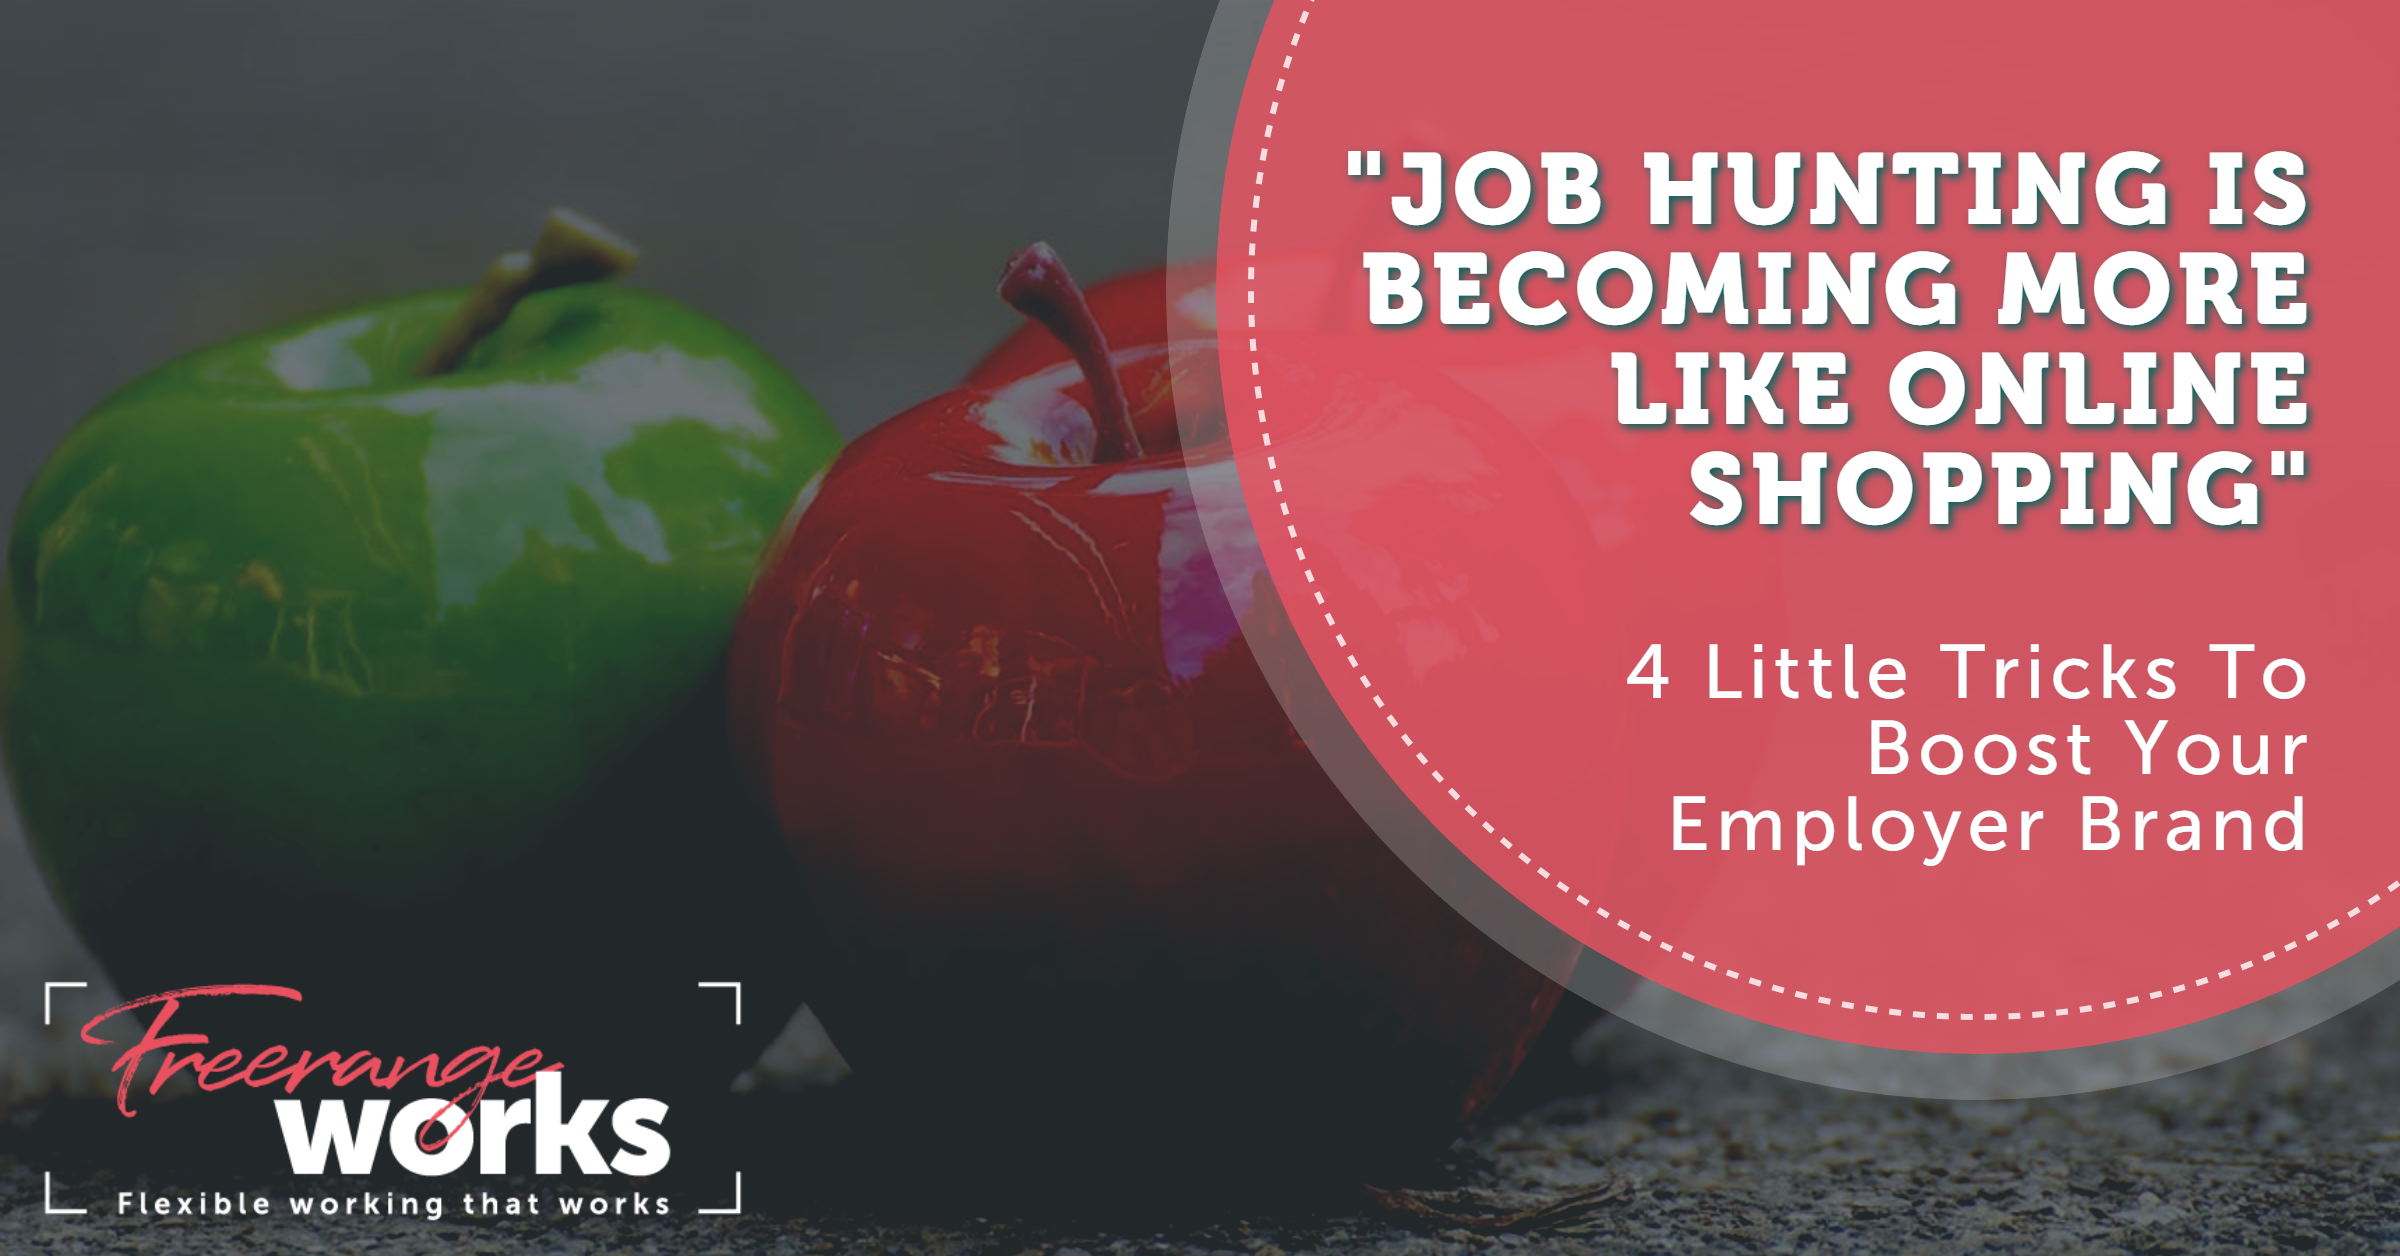 Four Little Tricks to Boost Your Employer Brand